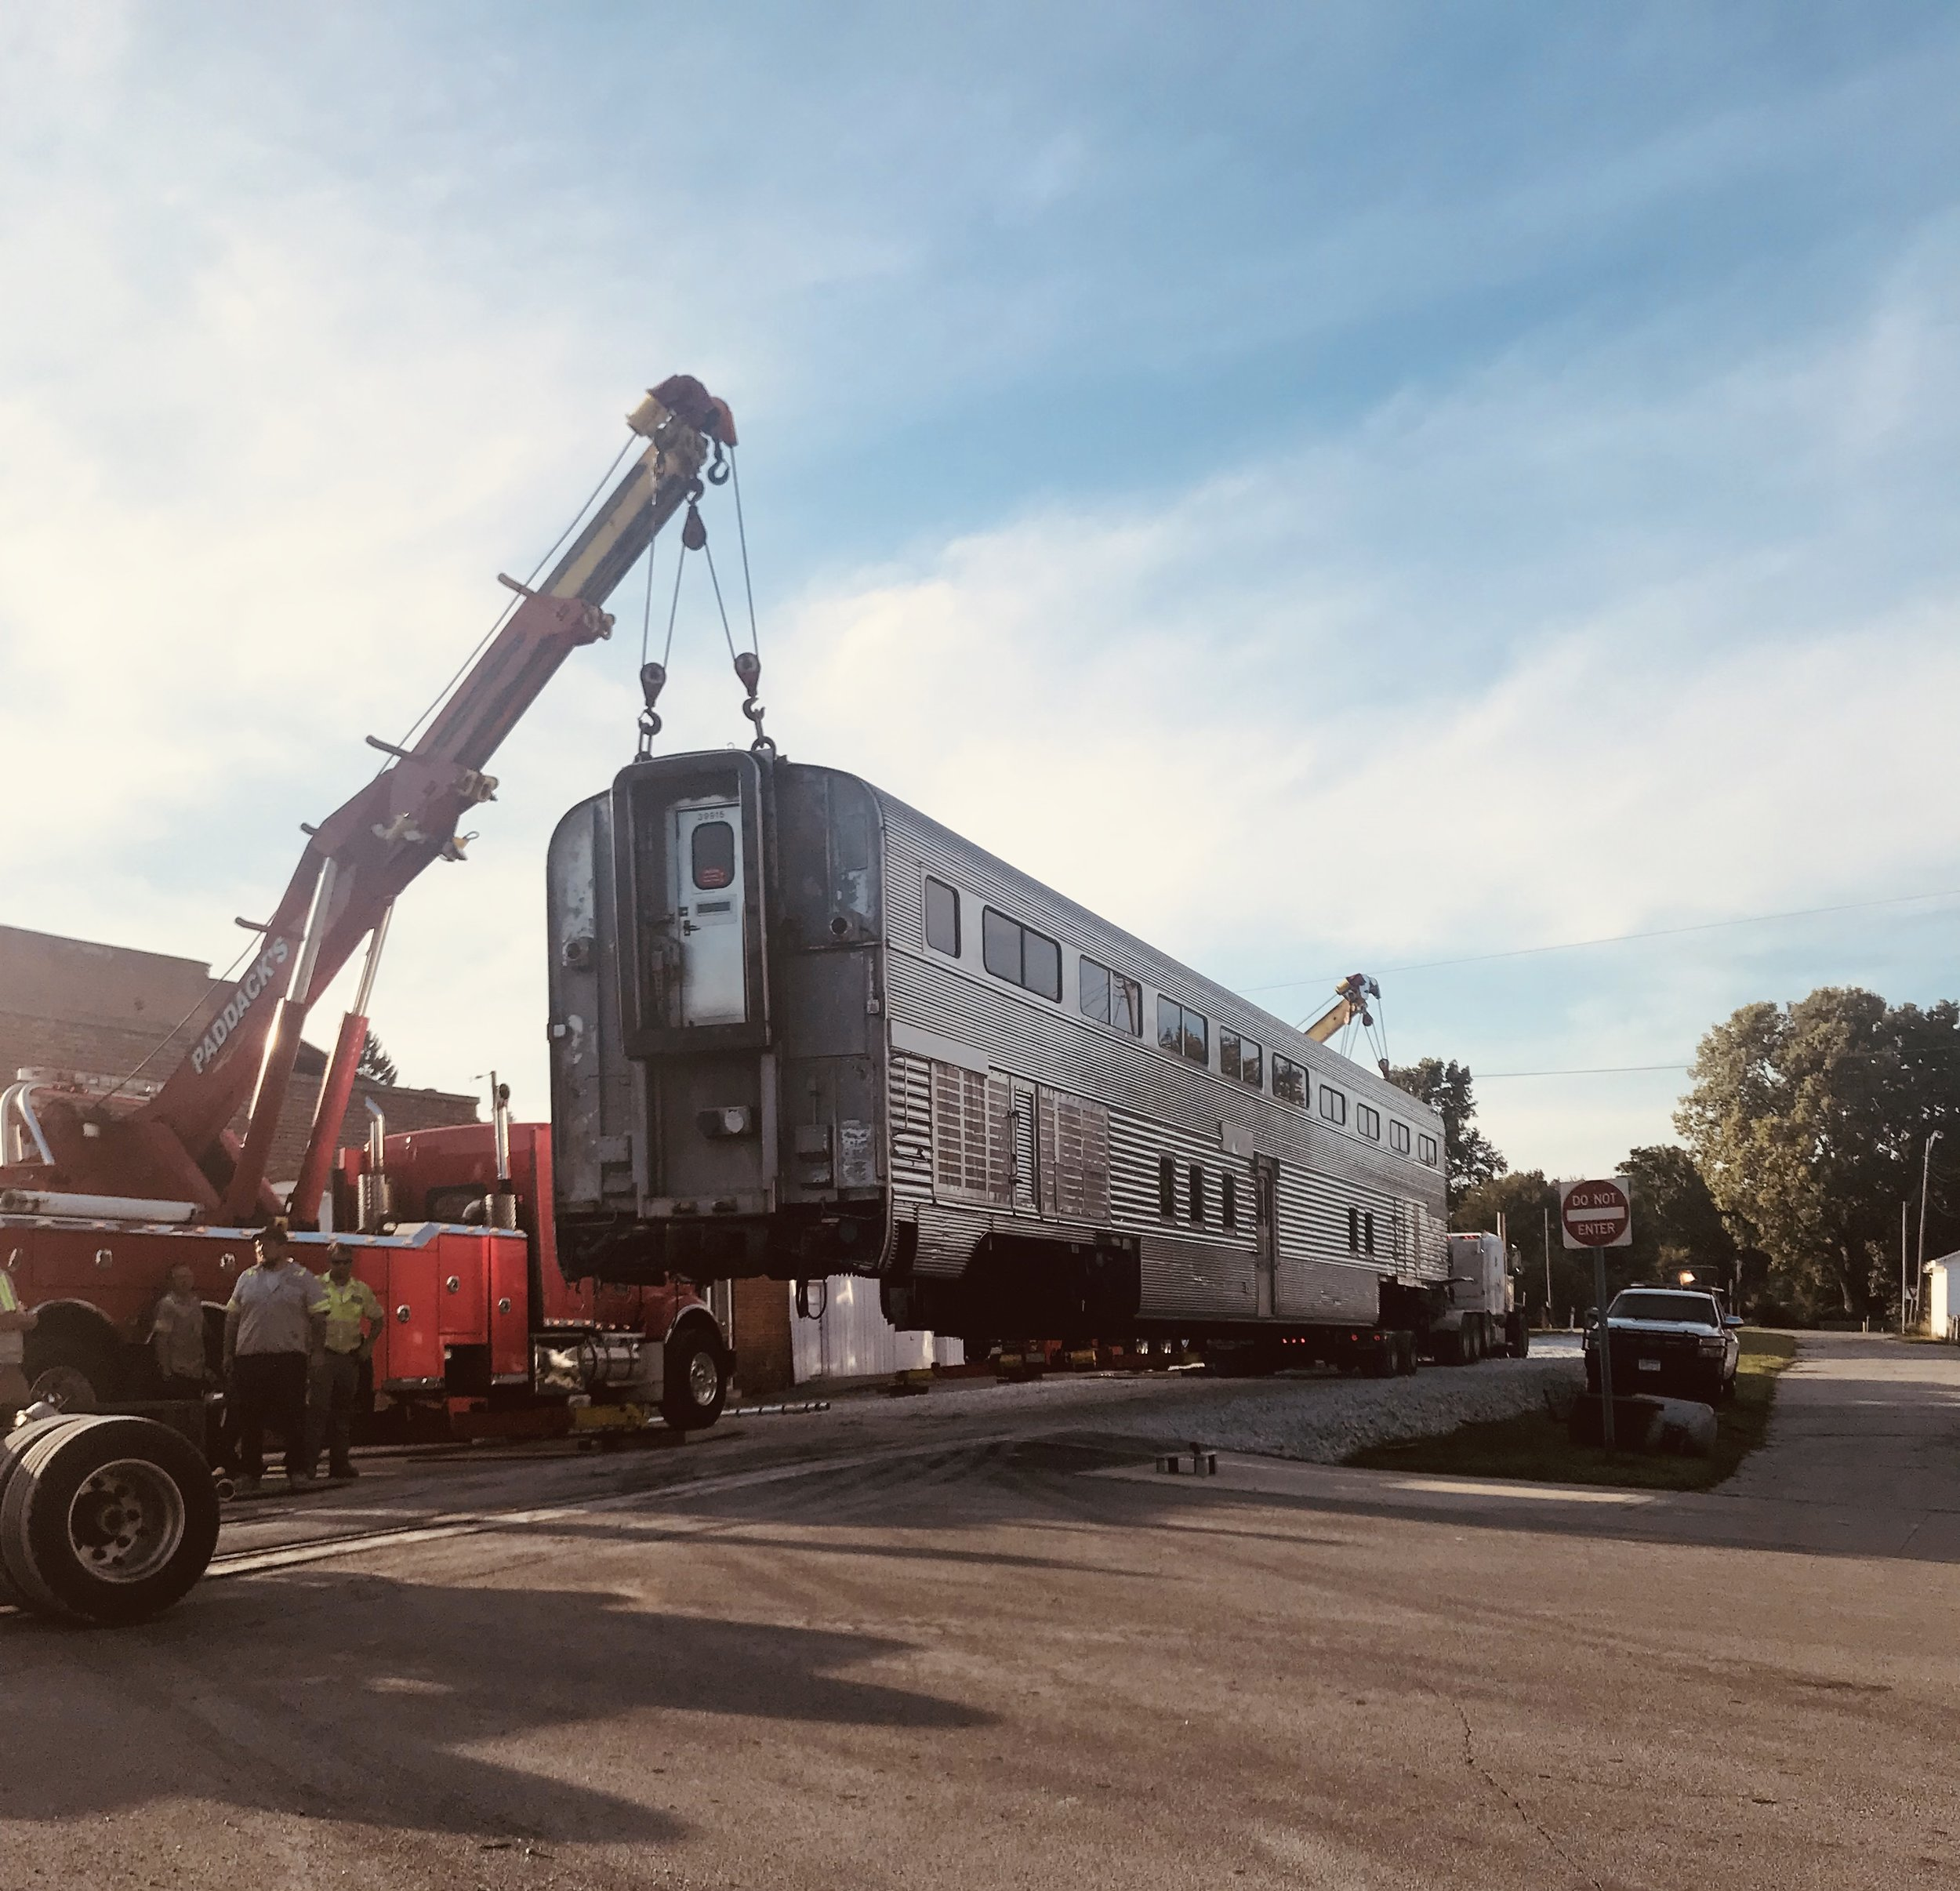 The first Santa Fe car is unloaded onto Arcadia's Main Street.